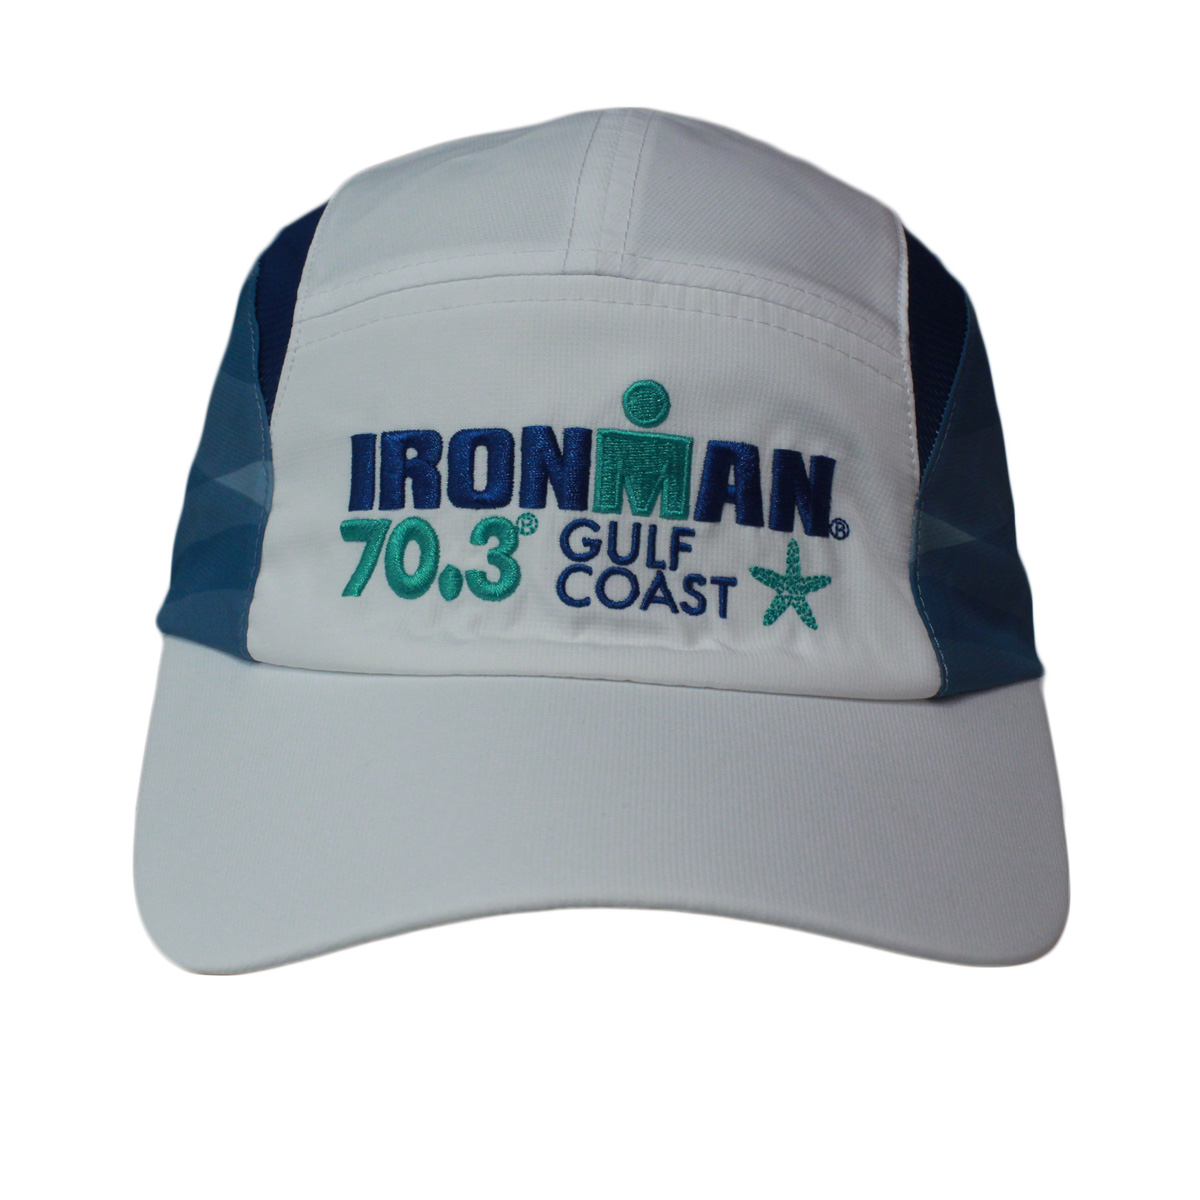 IRONMAN 70.3 GULF COAST EVENT TECH HAT - WHITE